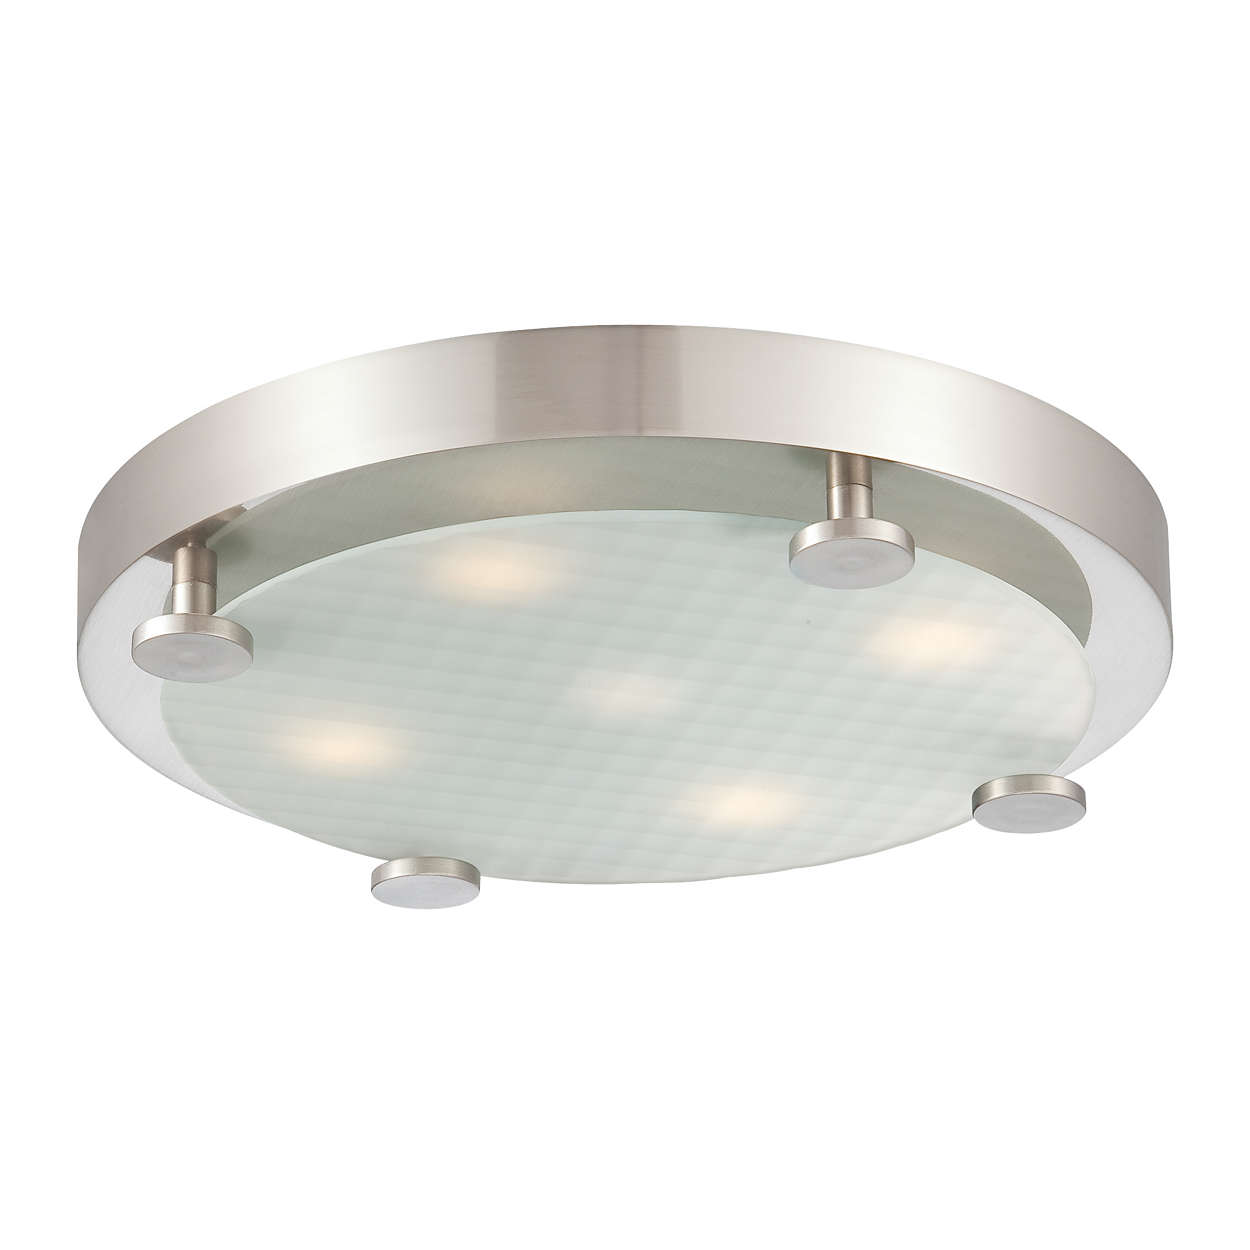 ceiling light   philips - ceiling light